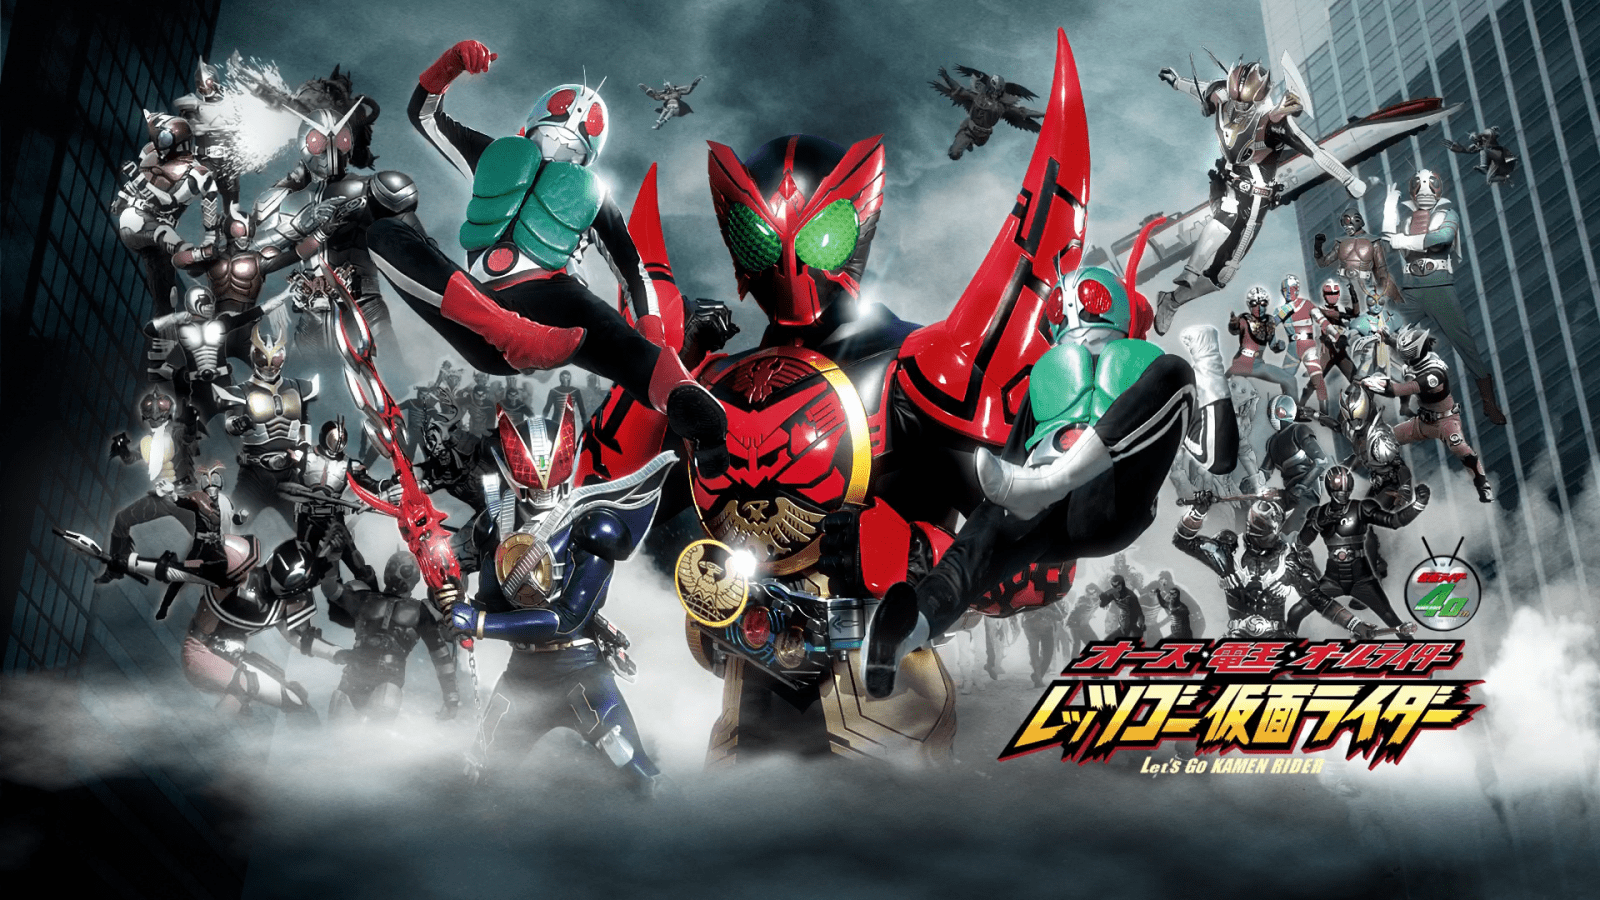 OOO, Den-O, All Riders- Let's Go Kamen Riders